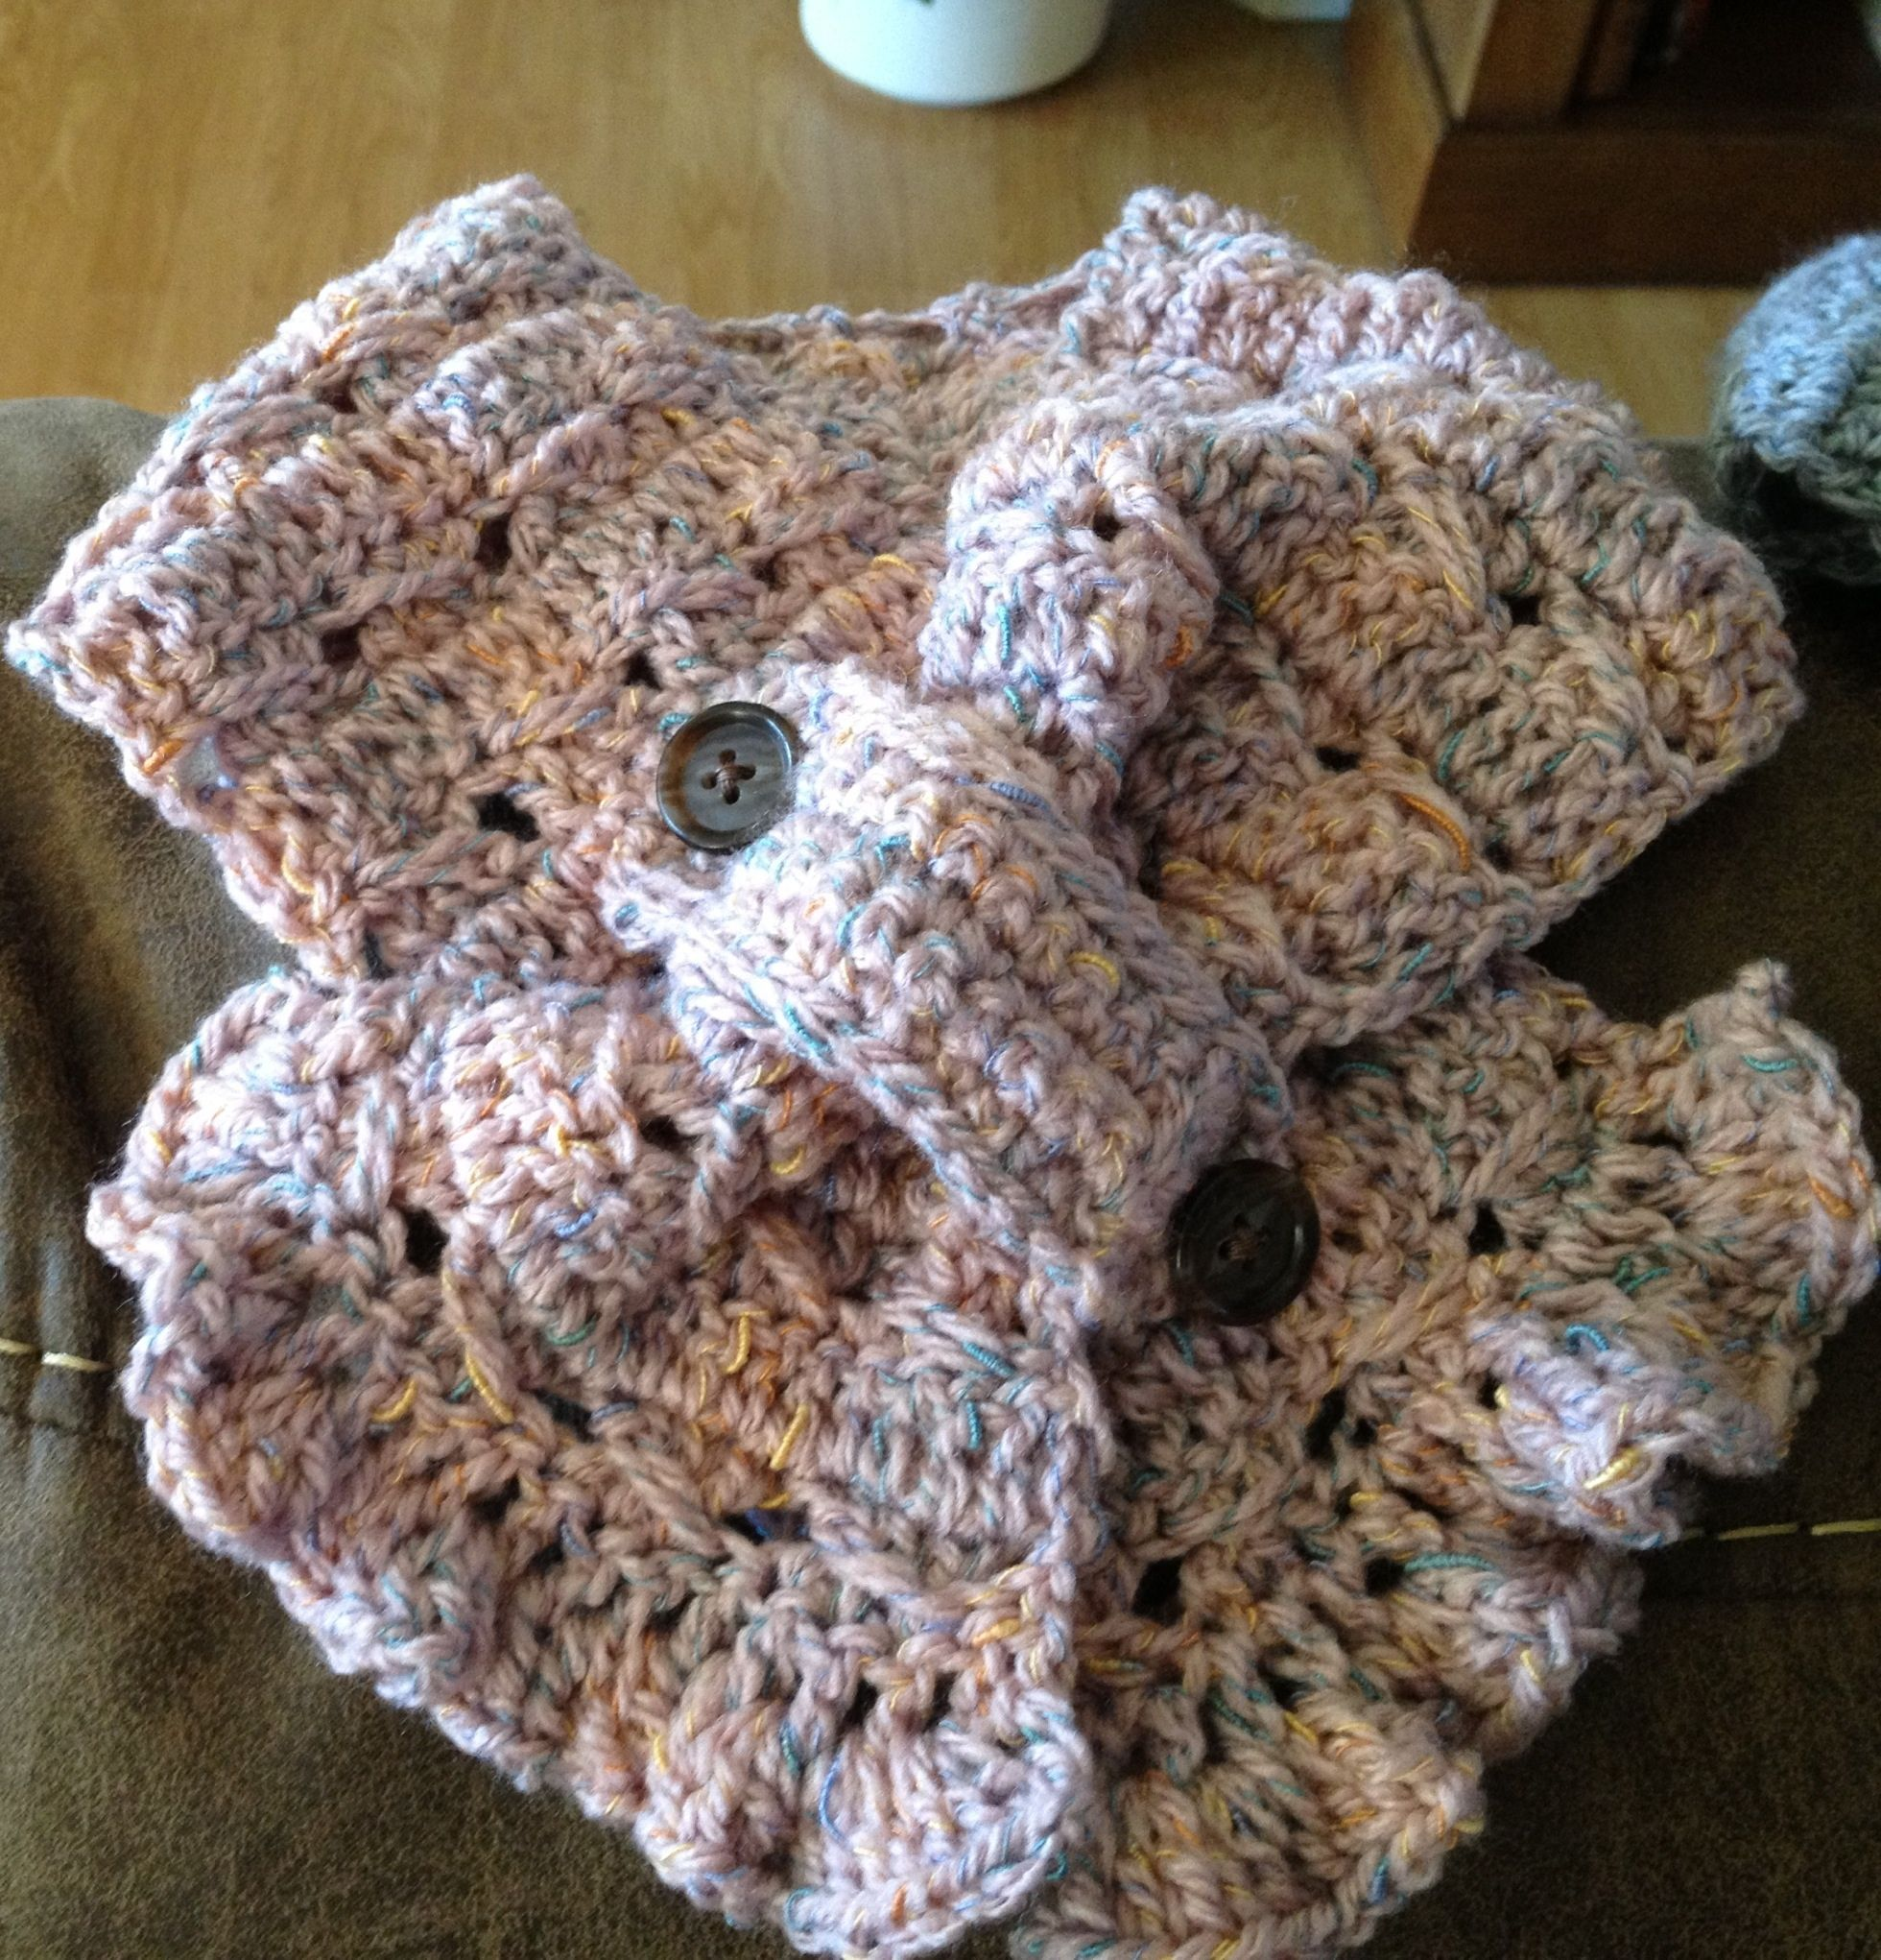 Crochet Neck Warmer : Crochet neck warmer for Rylin Crochet - Neckwarmers & Scarflettes ...